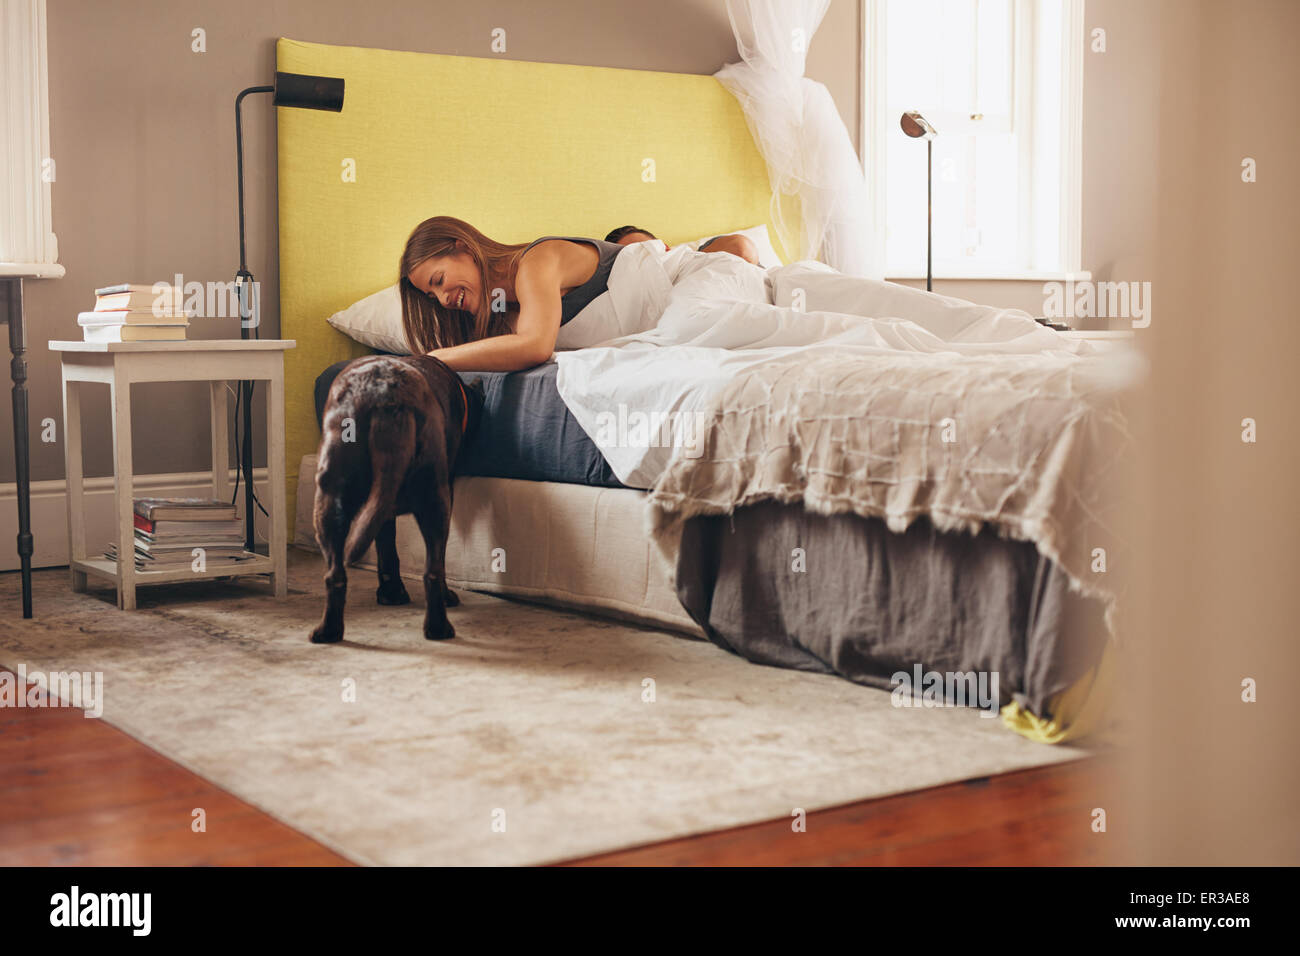 Woman lying on bed playing with her pet dog in morning. Man sleeping in background. - Stock Image